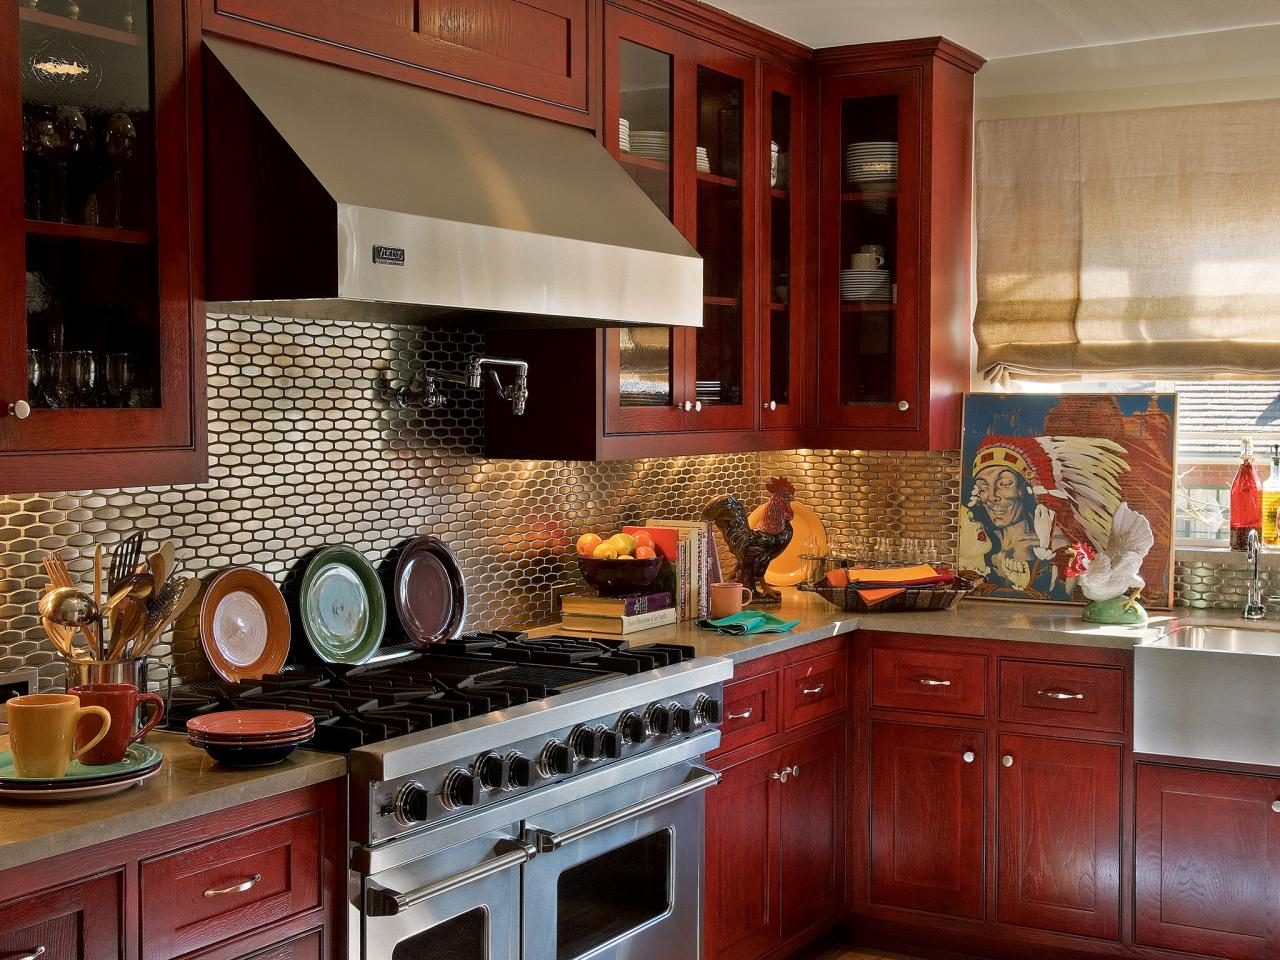 ci-farrow-and-ball-the-art-of-color-pg245_red-kitchen-cabinets_4x3-jpg-rend-hgtvcom-1280-960